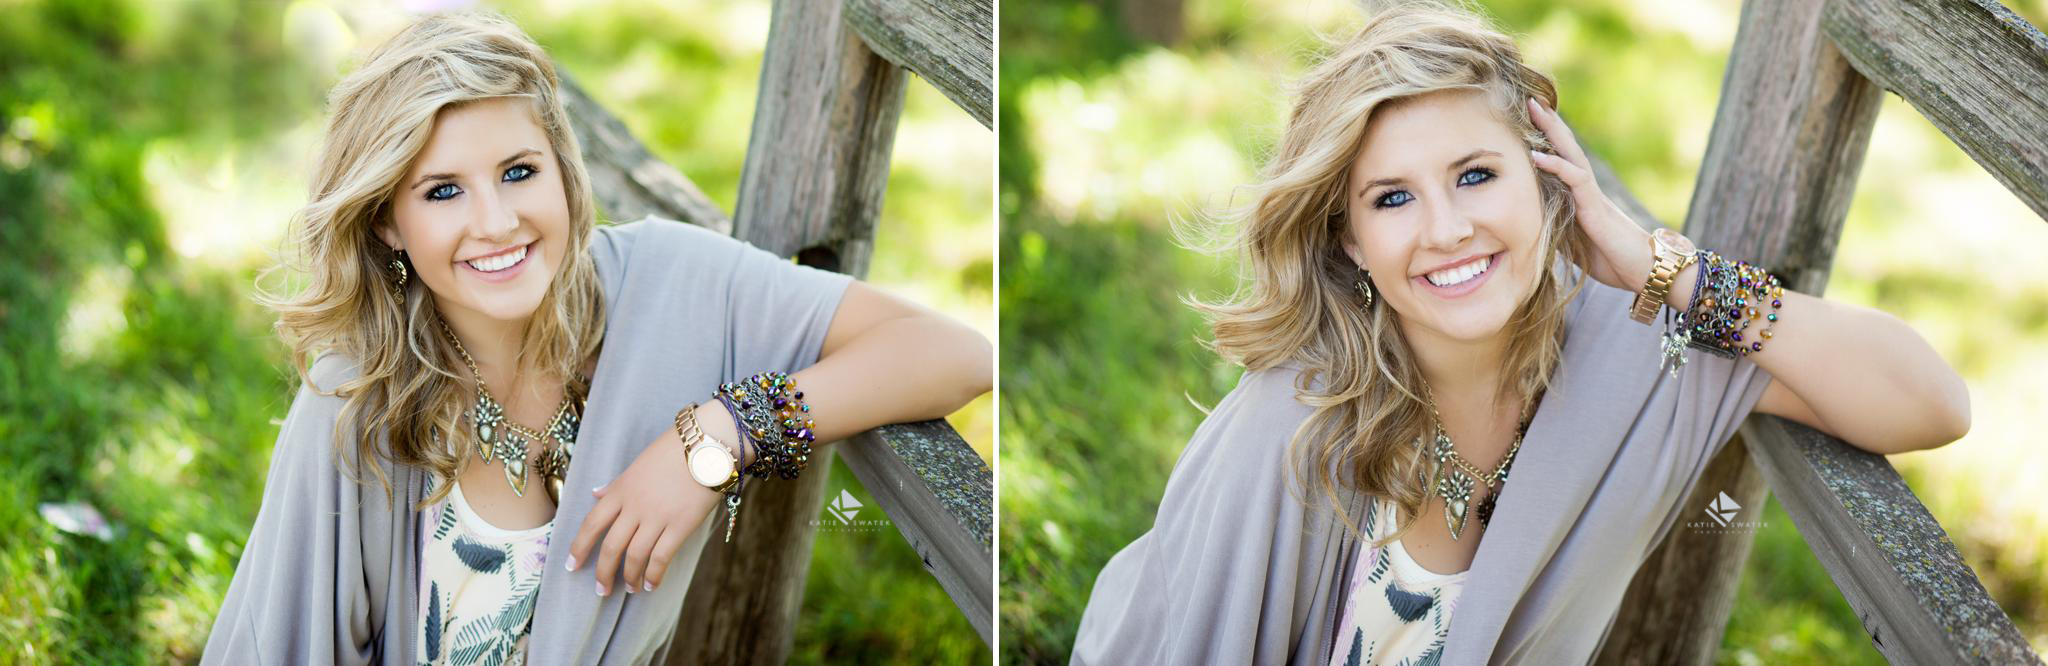 blonde senior girl in a lavender cardigan photographed by a fence